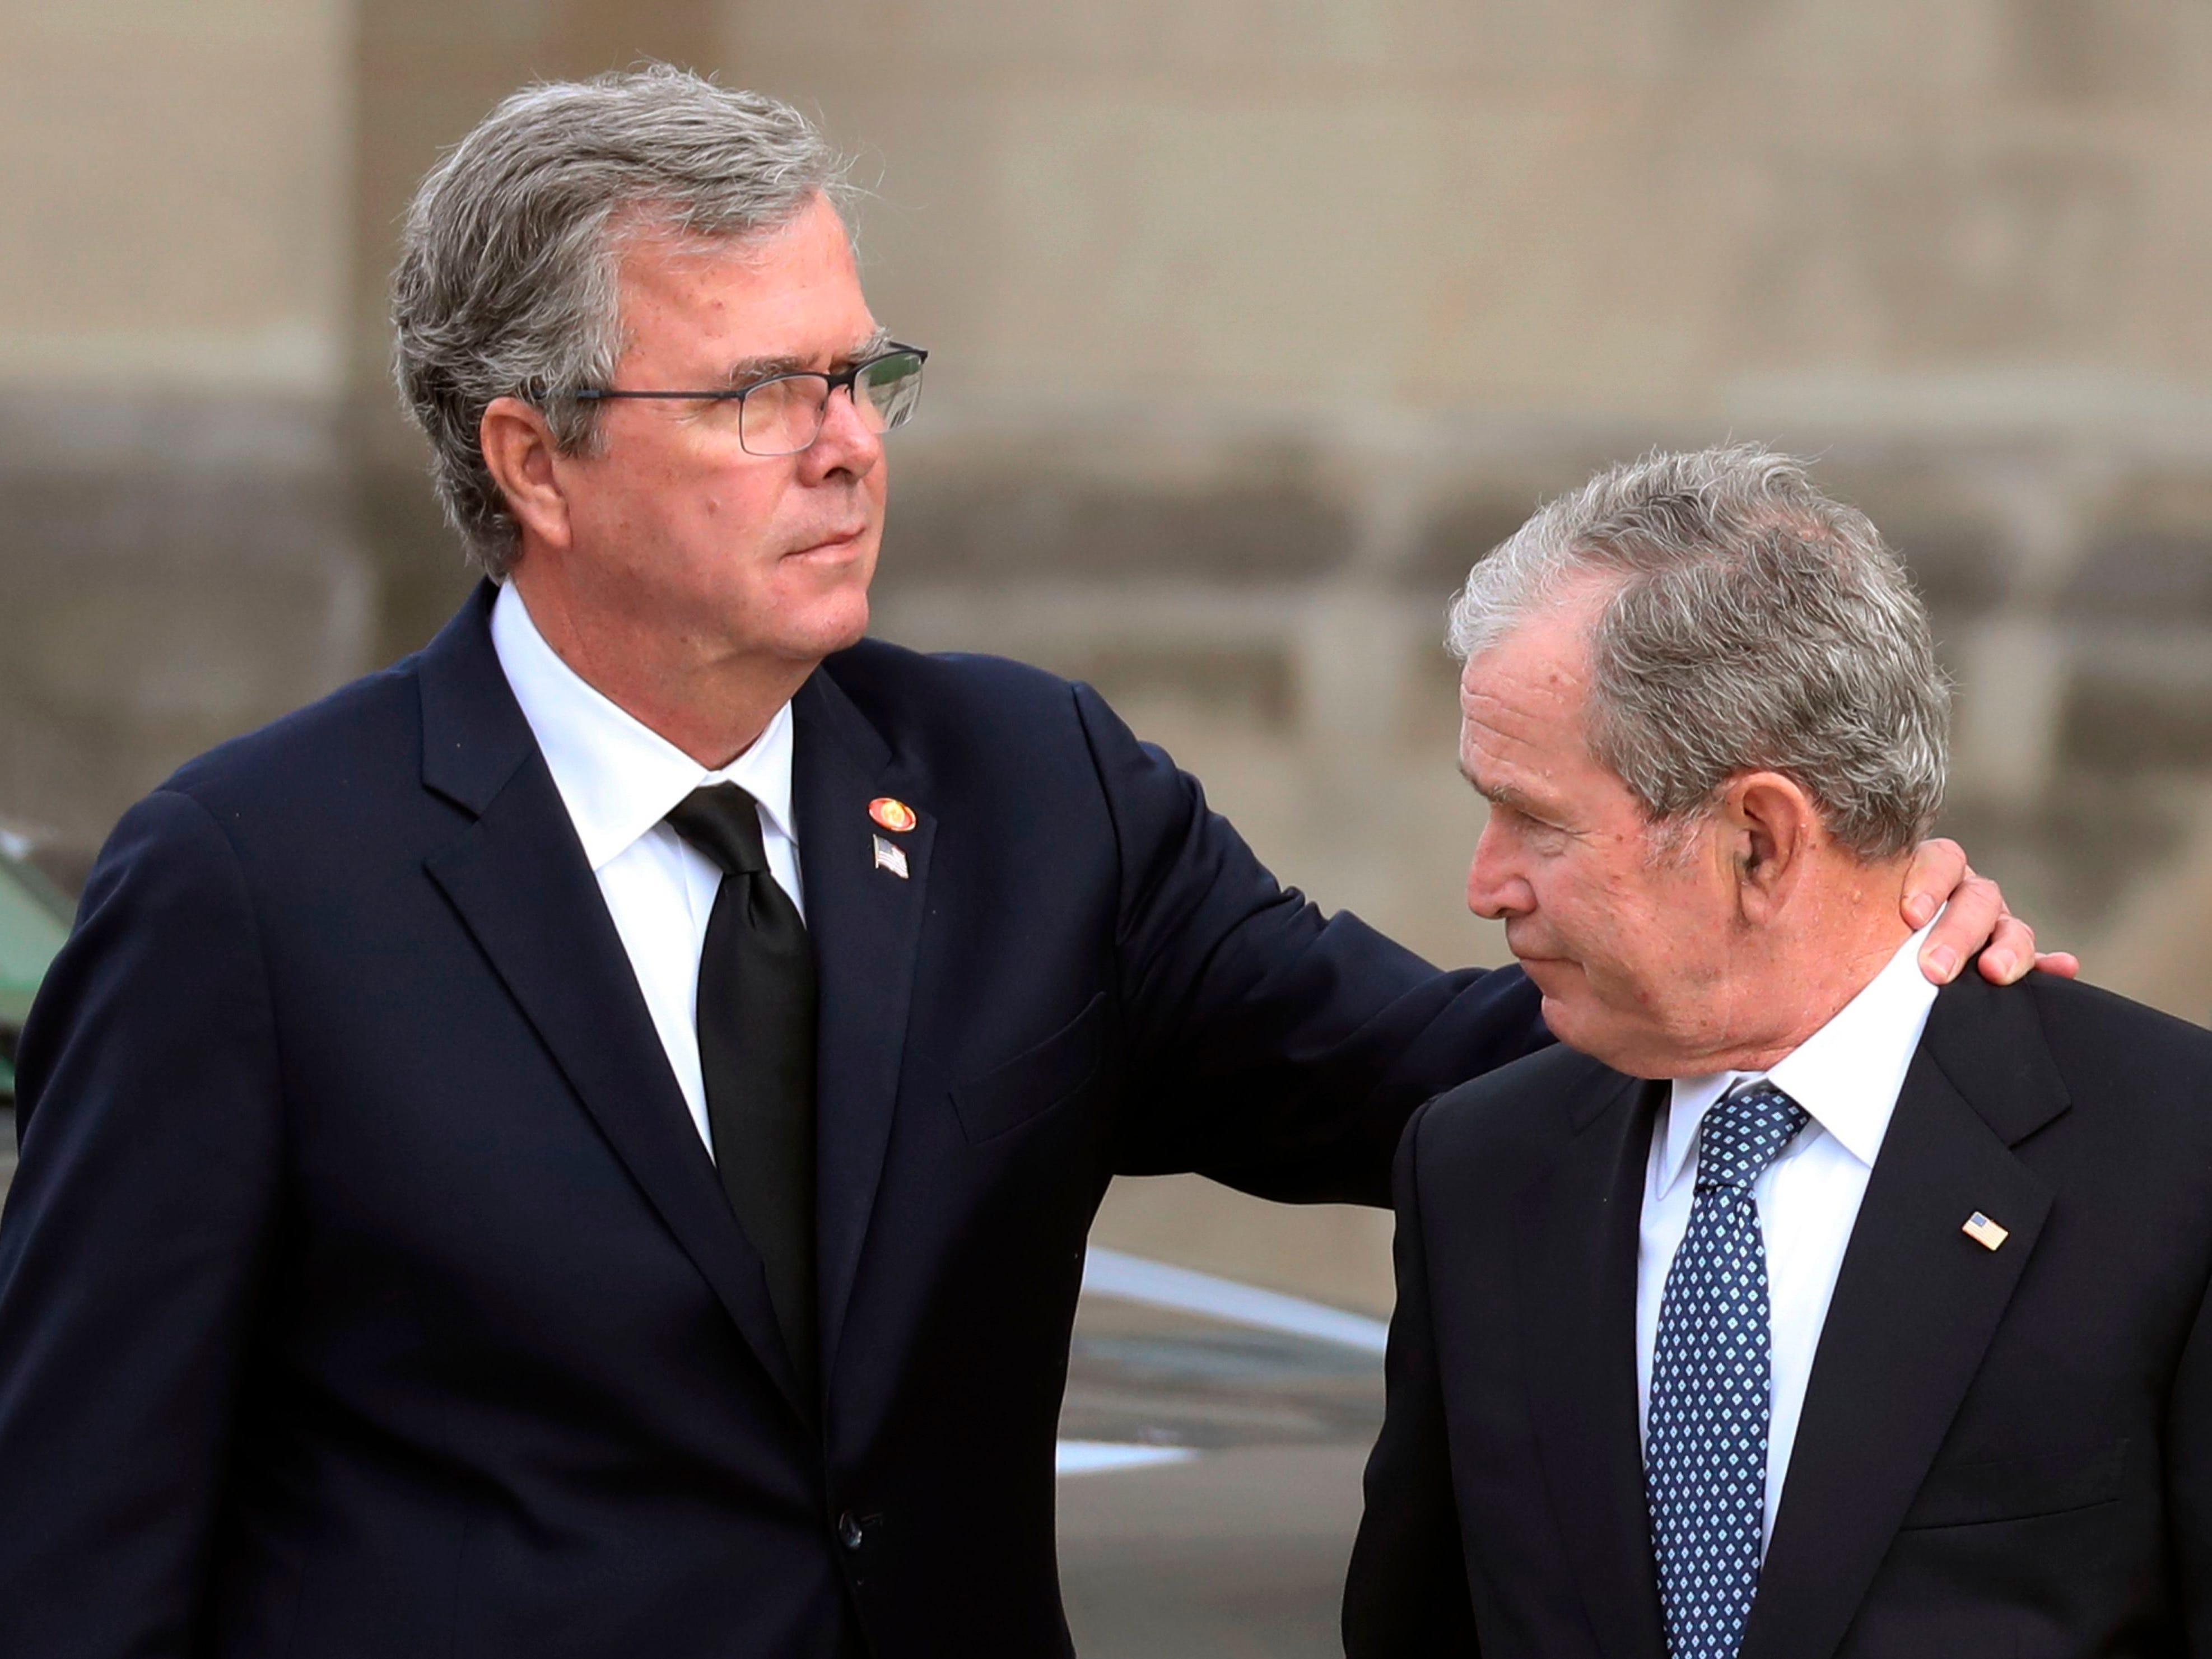 Former President George W. Bush, right, and his brother, former Florida Gov. Jeb Bush, arrive for the funeral for their father, former President George H. W. Bush, at the National Cathedral.